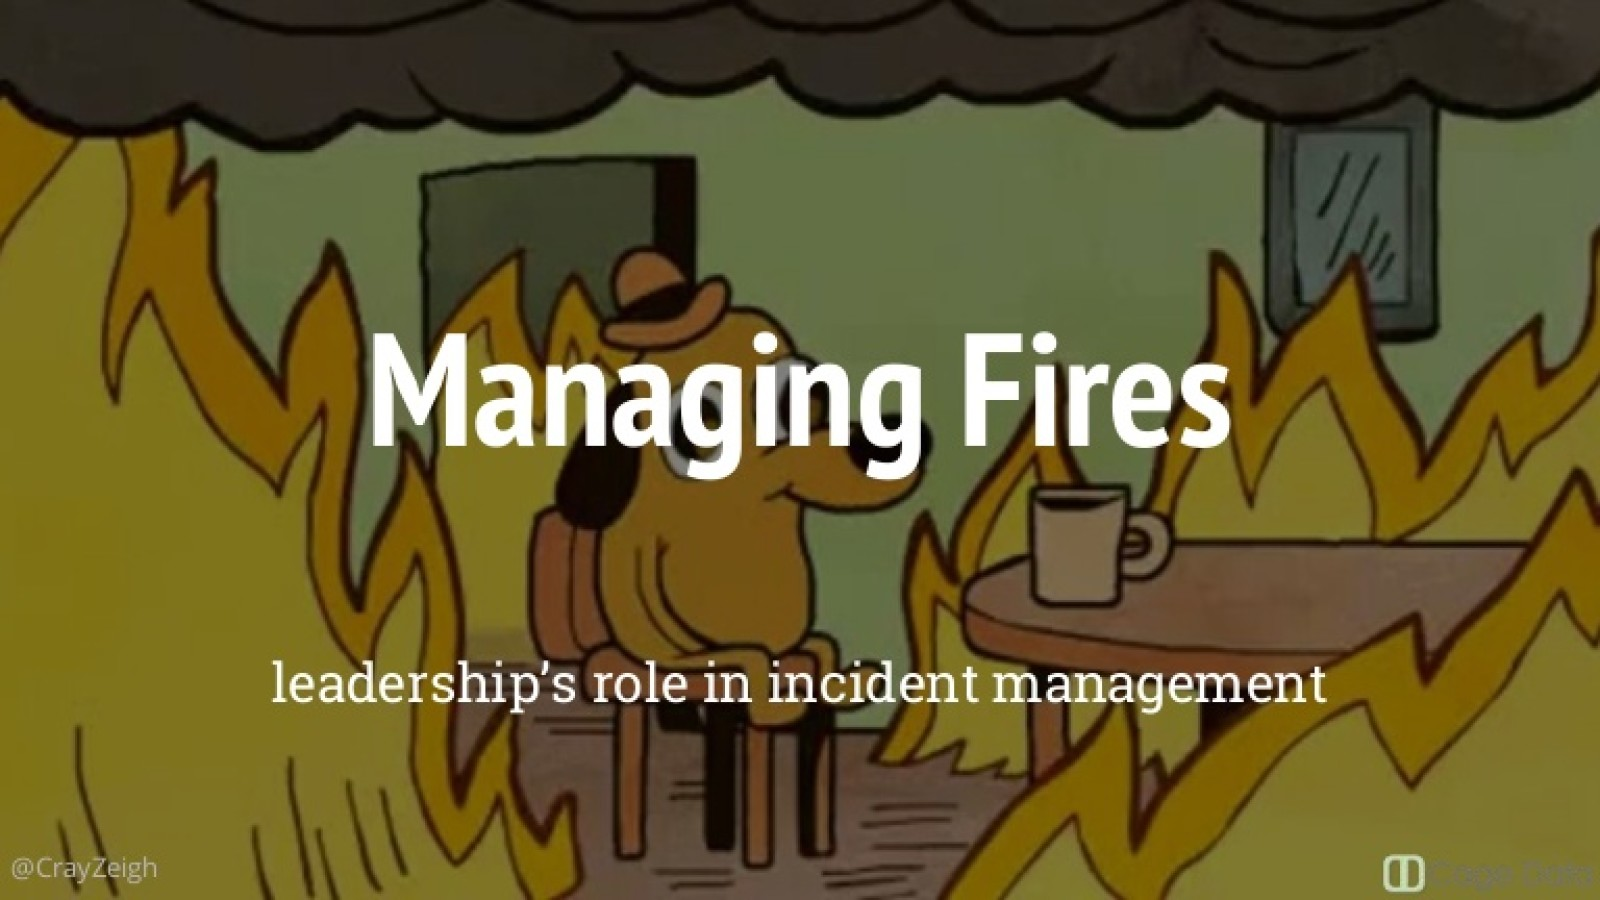 Managing fires